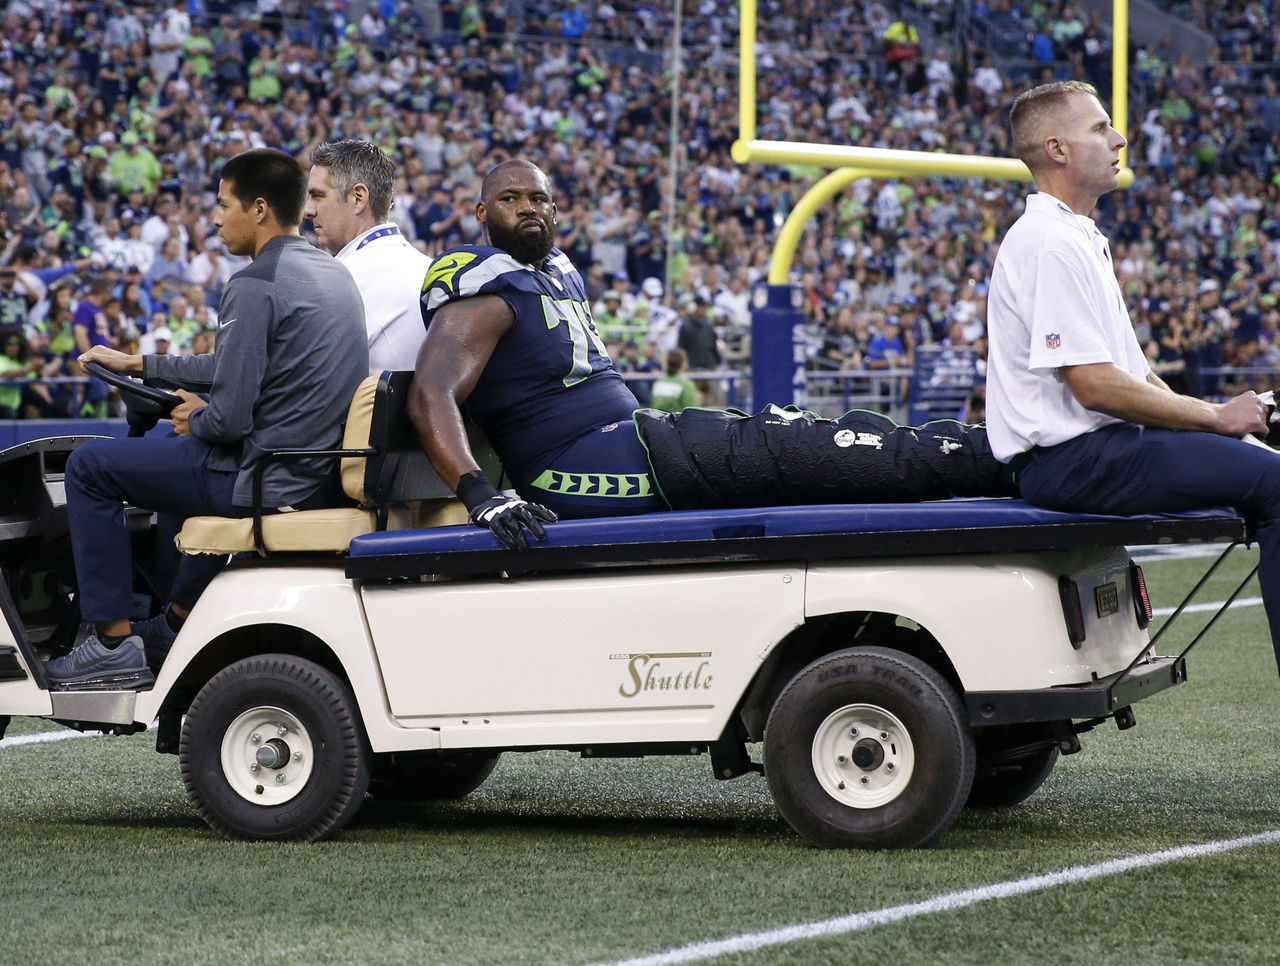 Cropped 2017 08 19t035308z 1113242603 nocid rtrmadp 3 nfl minnesota vikings at seattle seahawks